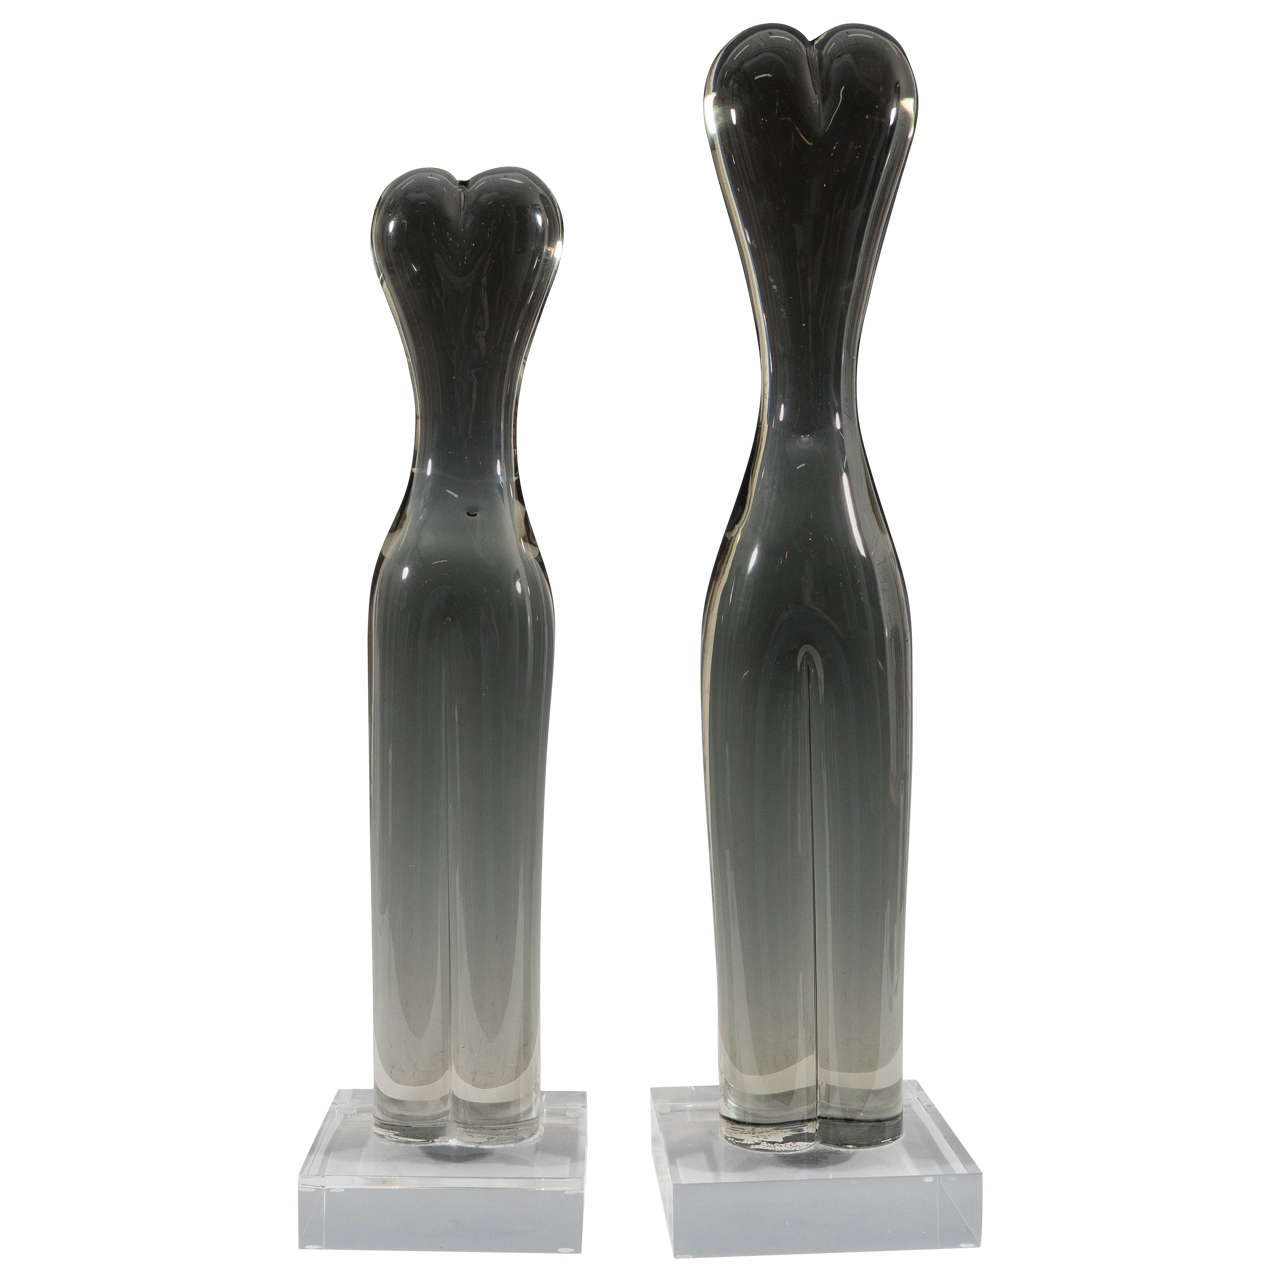 Pair of Rare Studio Glass Sculptures of Abstract Female Torsos